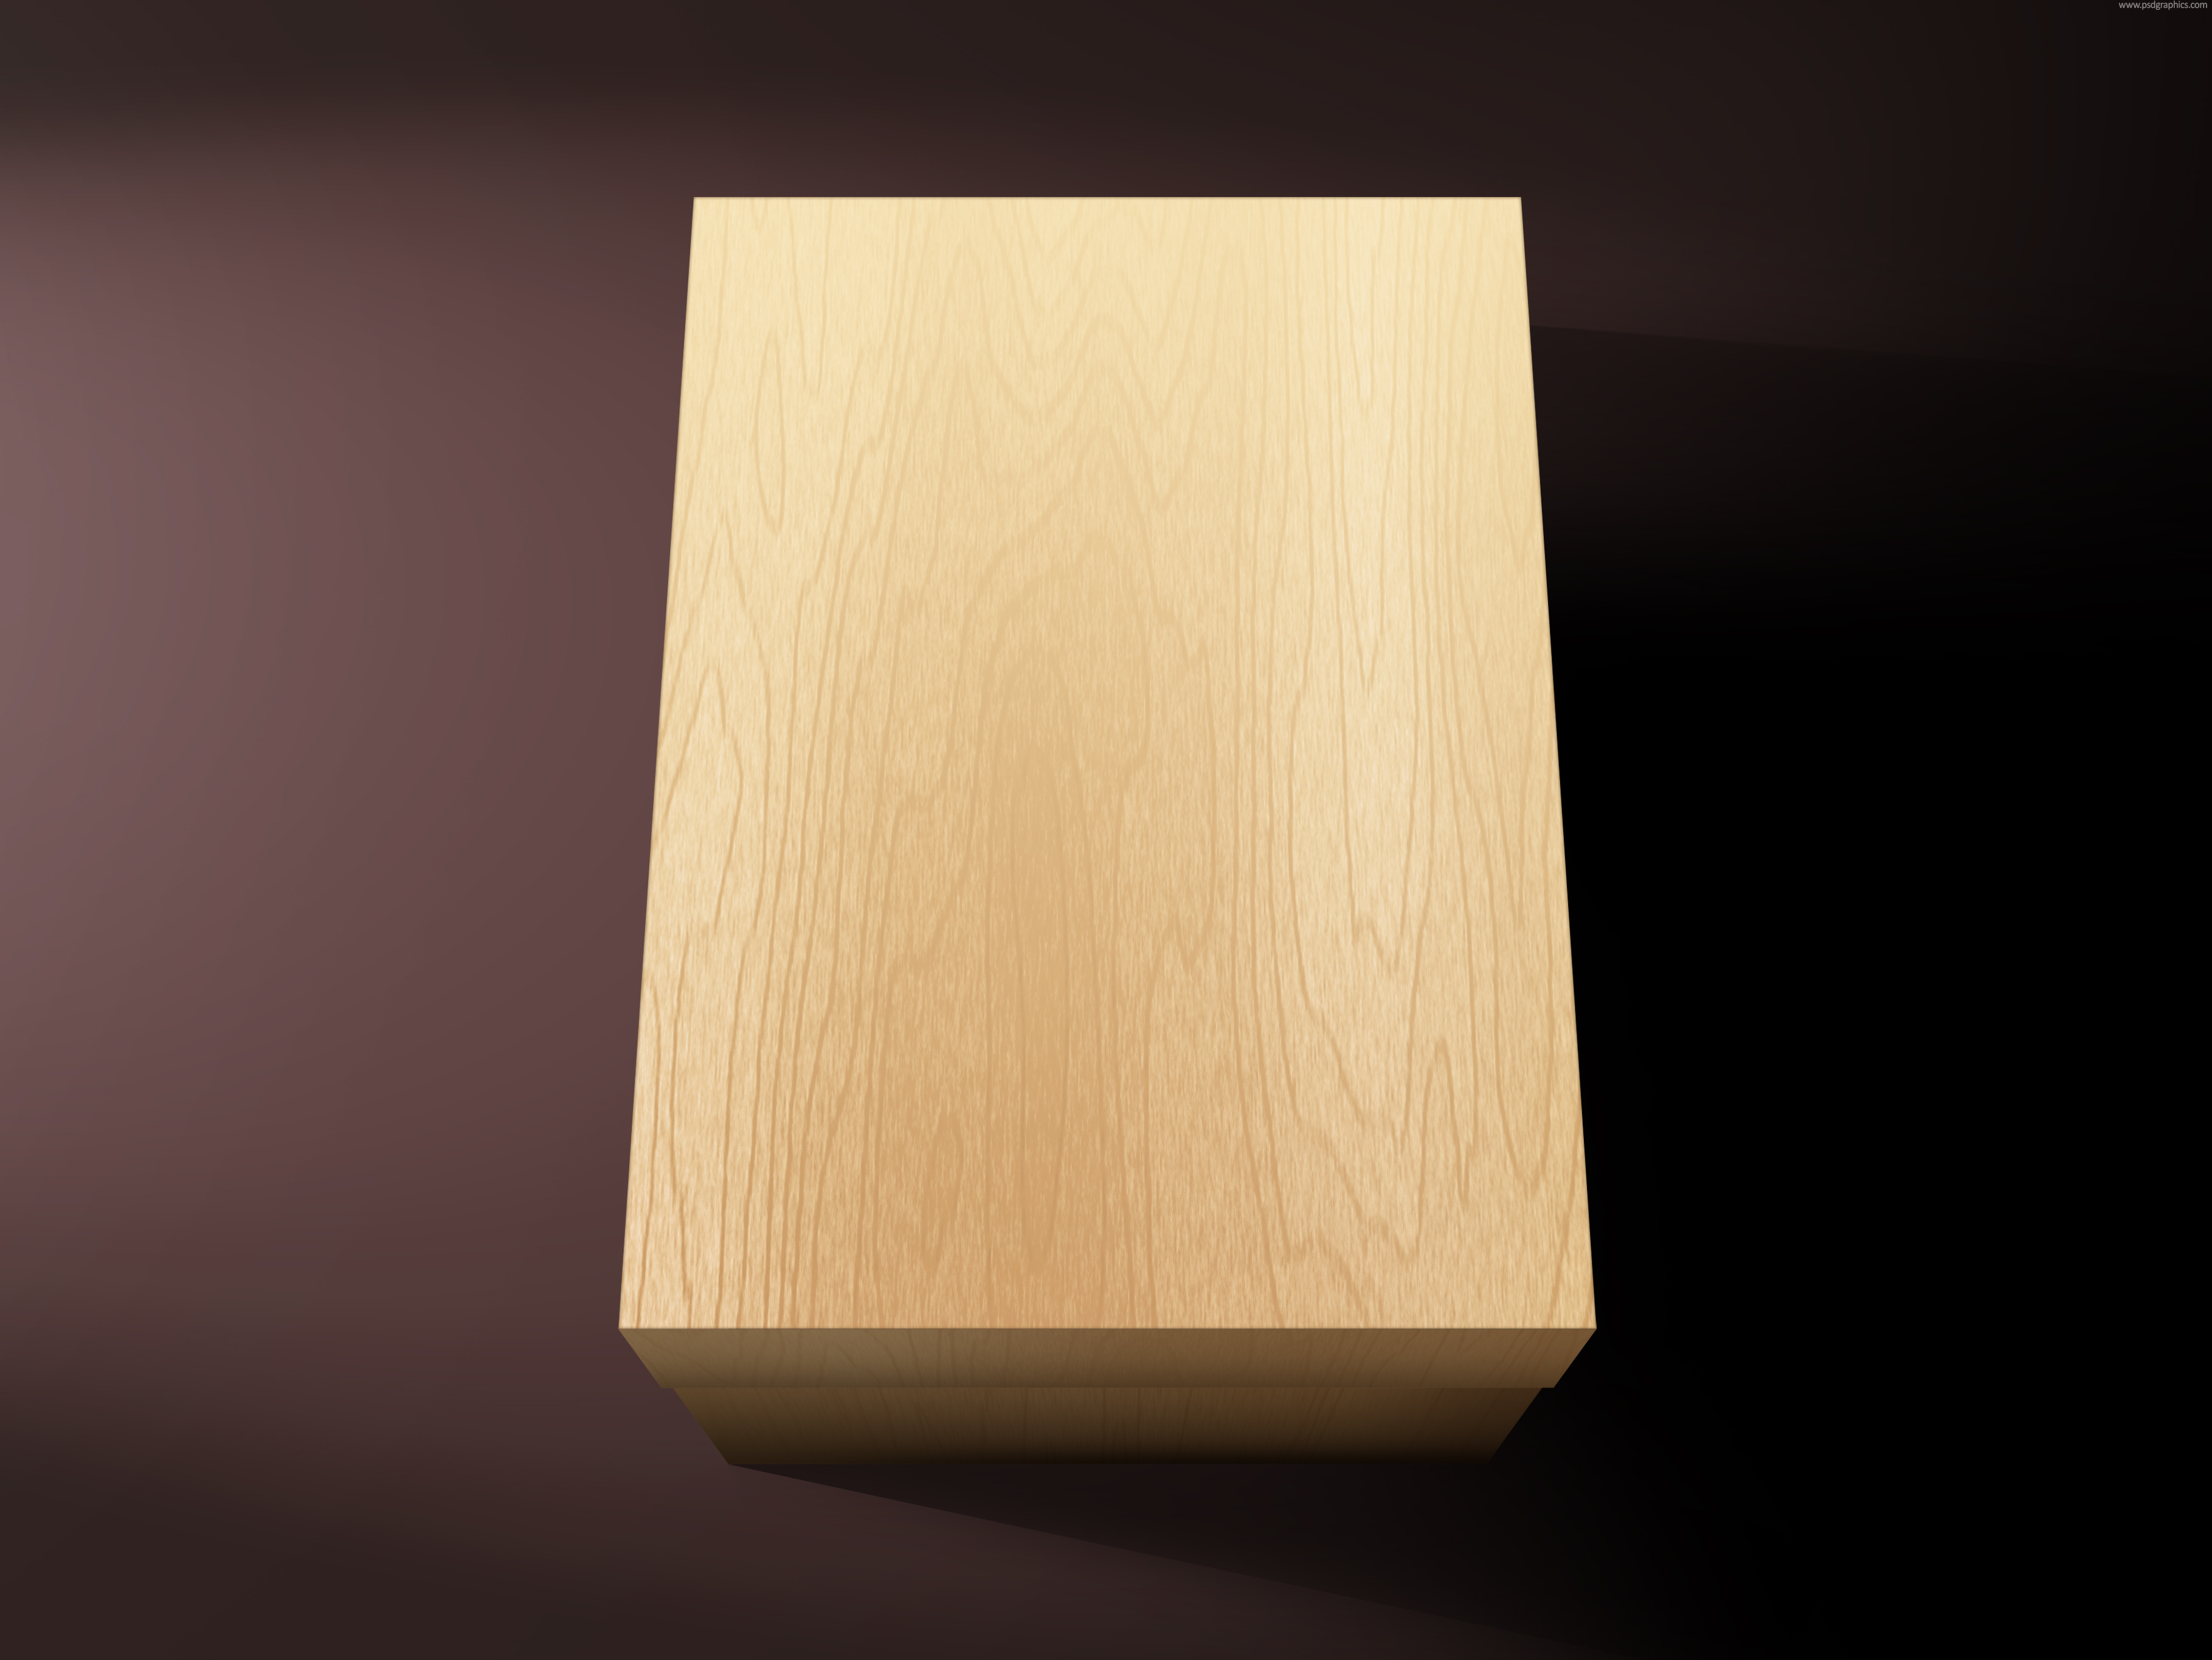 Blank Wooden Box Psdgraphics